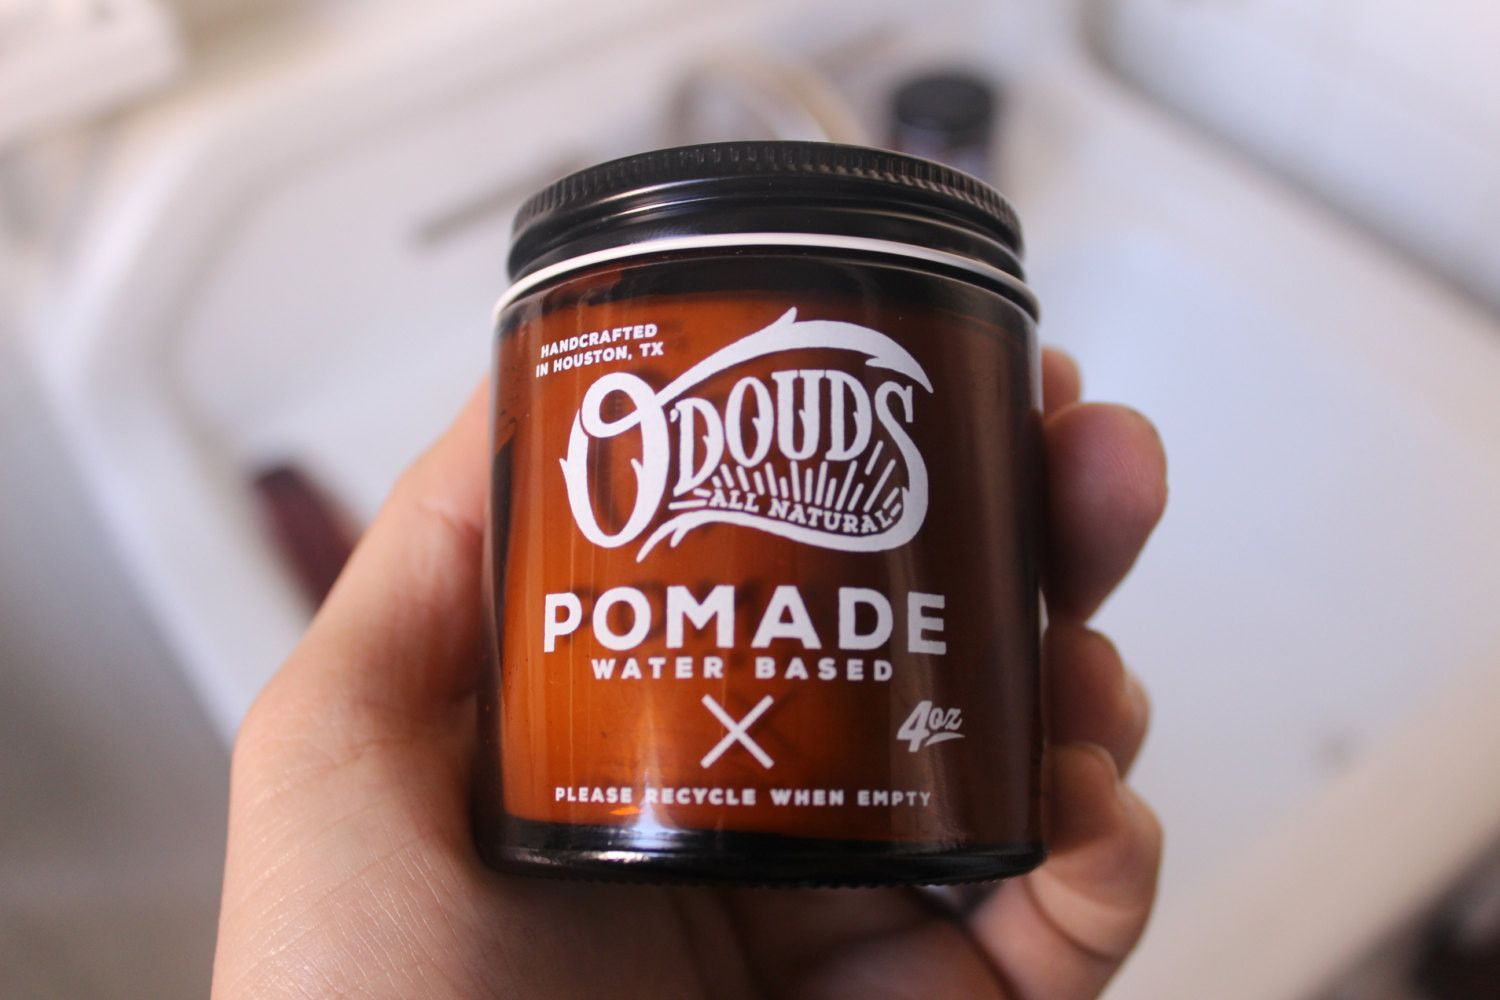 We Re Proud To Carry This Excellent All Natural Pomade From O Douds Is One Of The Very Few Or Only Truly Water Based Pomades Out There